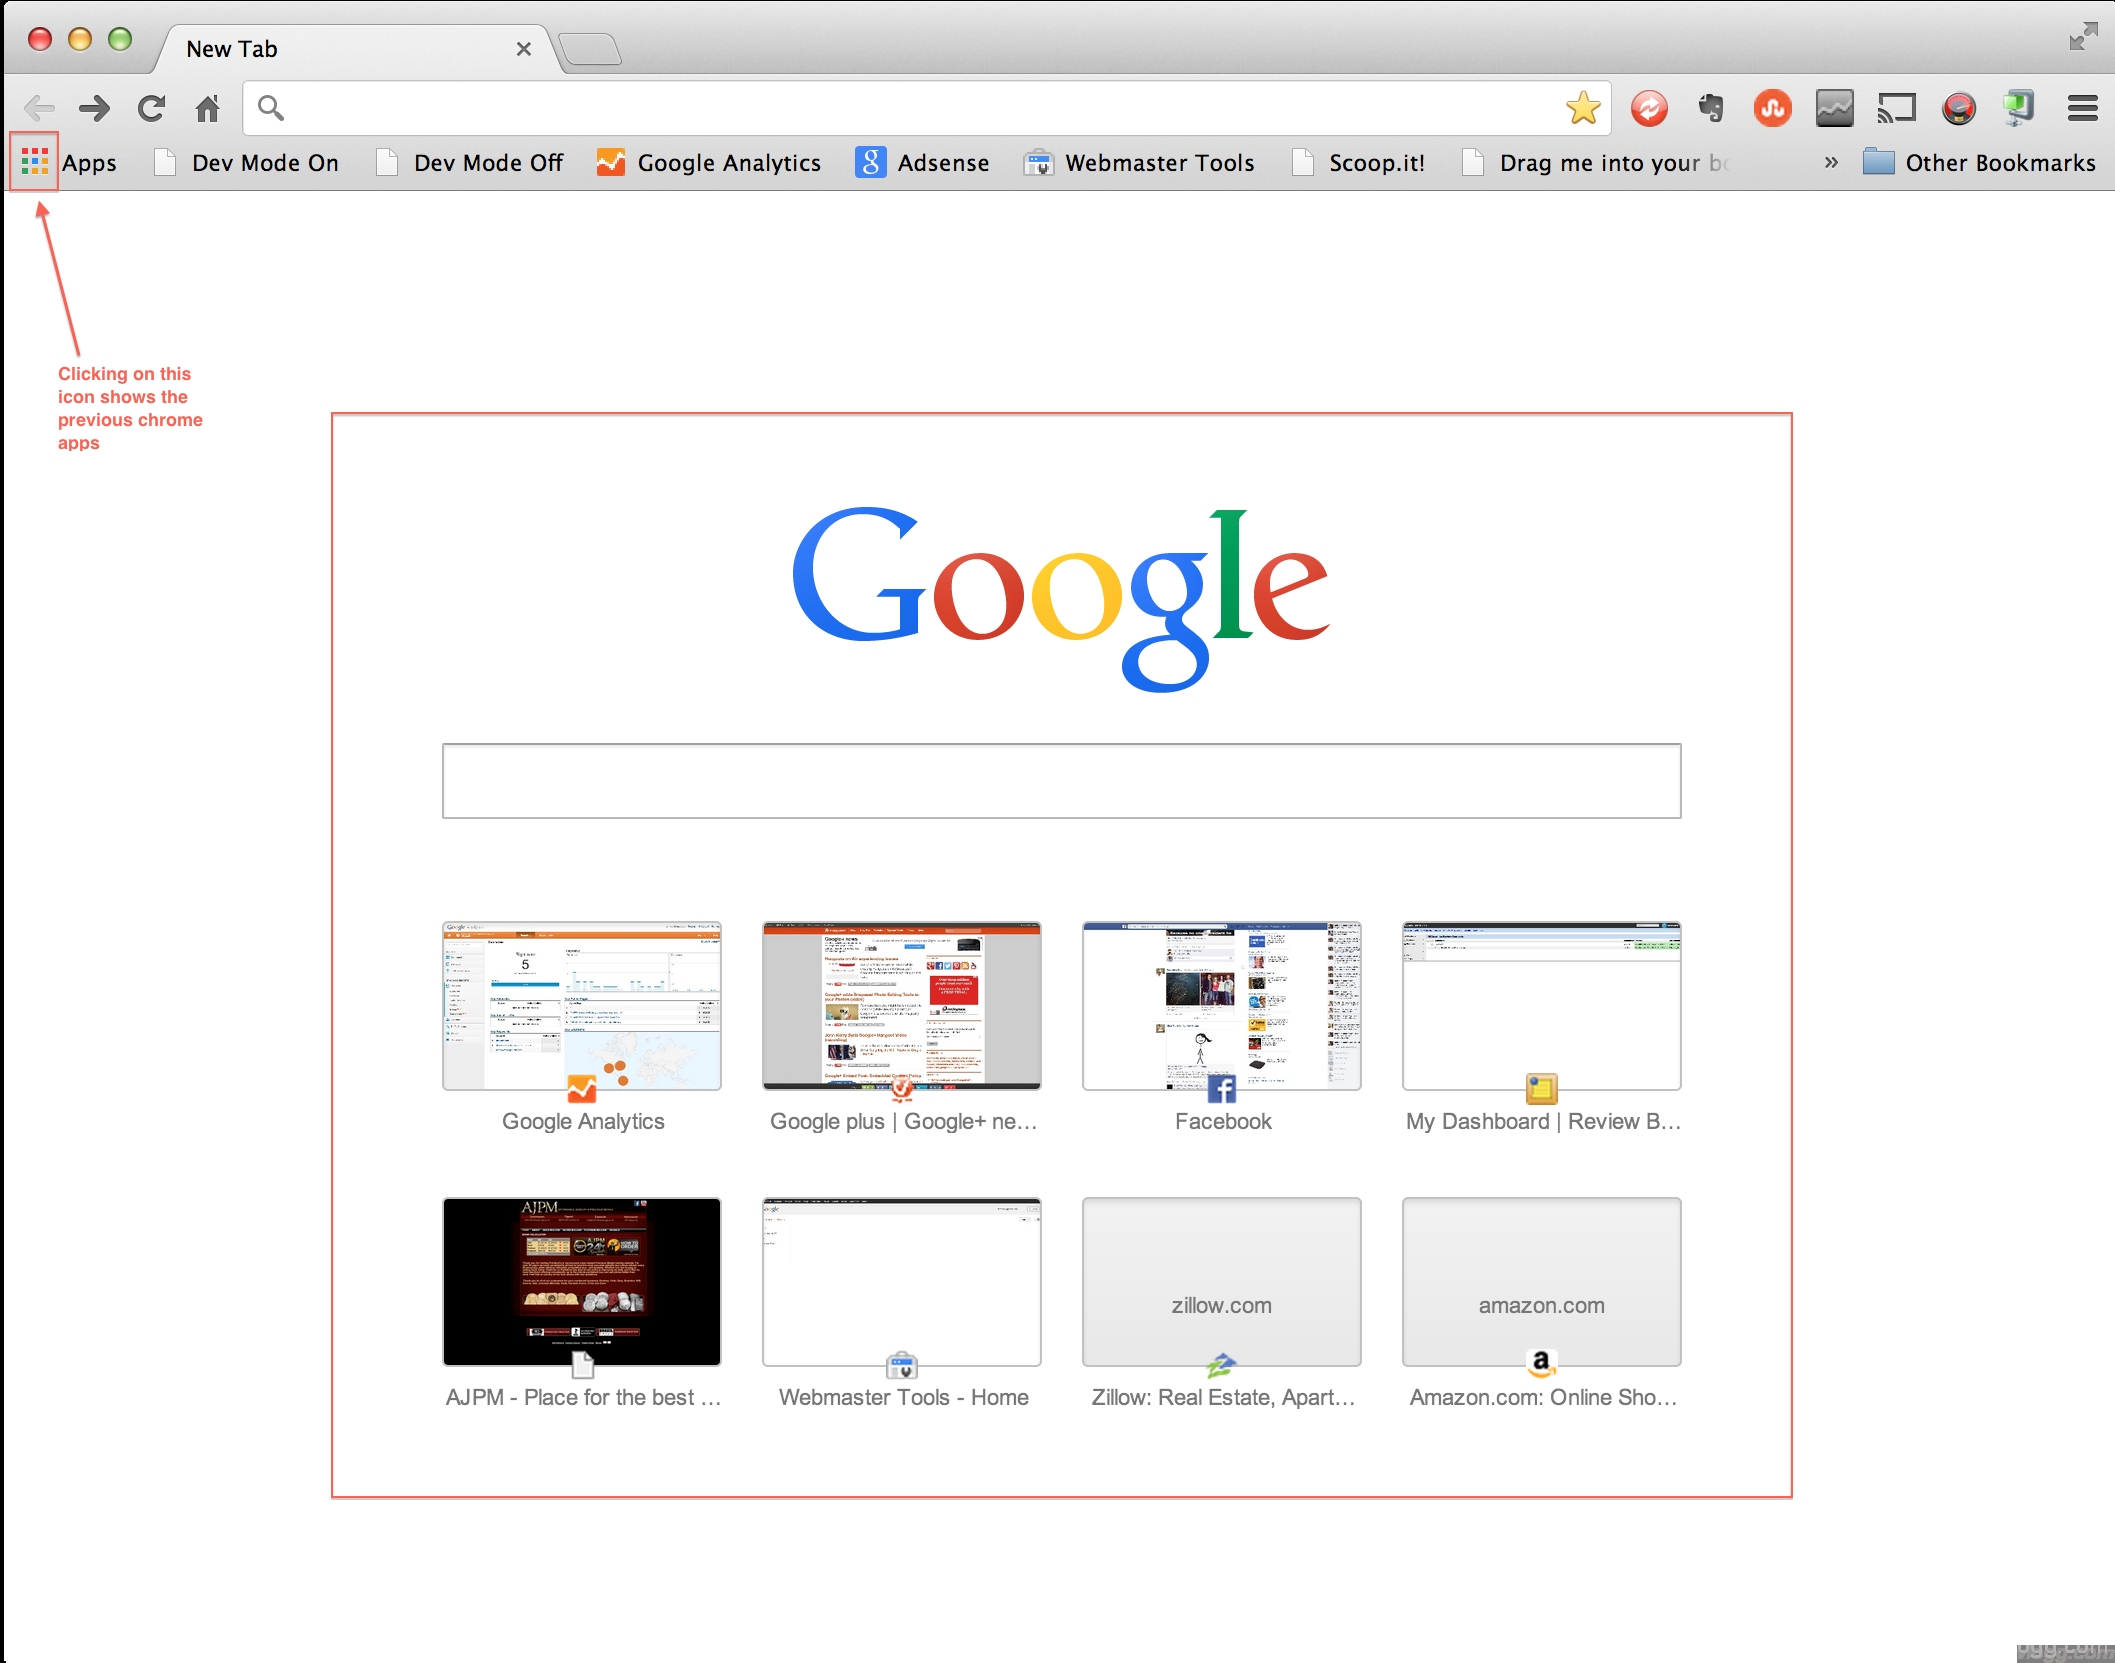 Google Chrome 29.0.1547.76 Update With Google Search in New Tab Released!